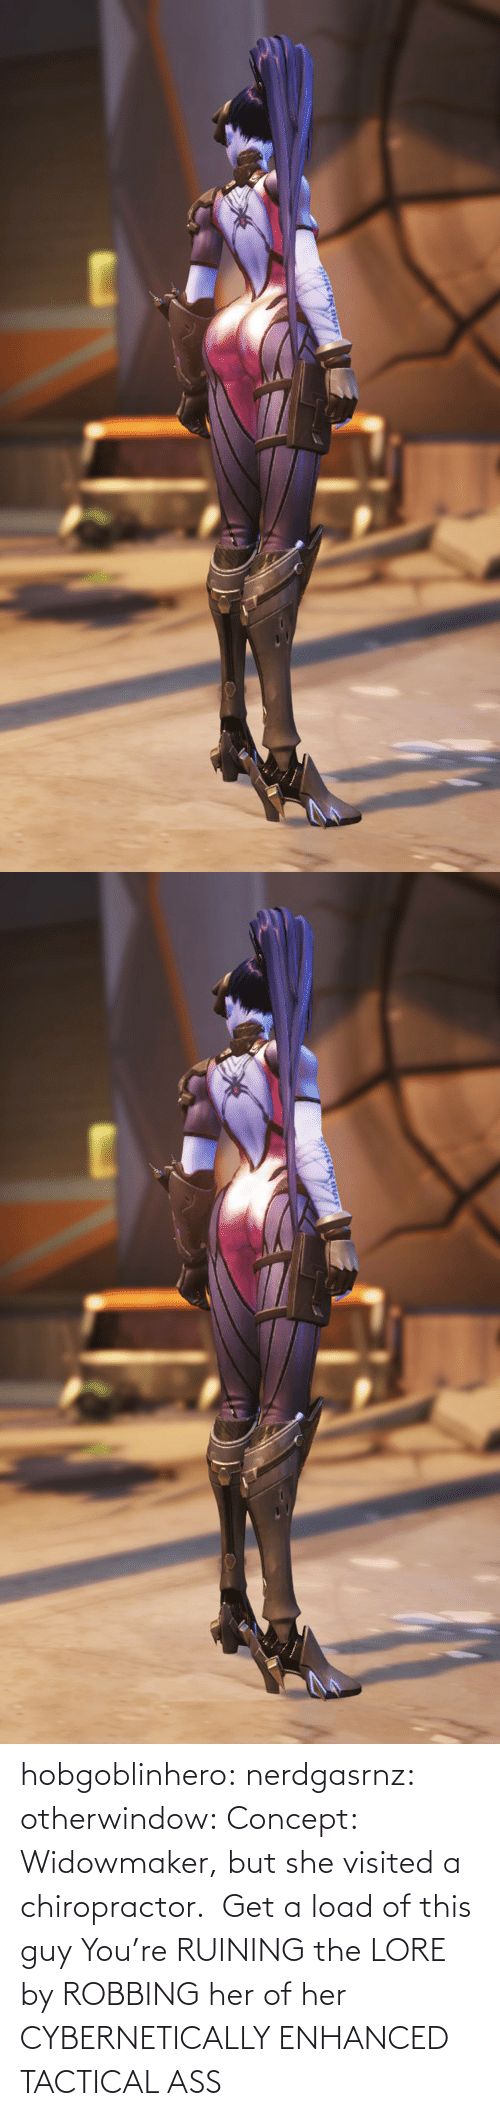 Image: hobgoblinhero: nerdgasrnz:  otherwindow: Concept: Widowmaker, but she visited a chiropractor.  Get a load of this guy  You're RUINING the LORE by ROBBING her of her CYBERNETICALLY ENHANCED TACTICAL ASS